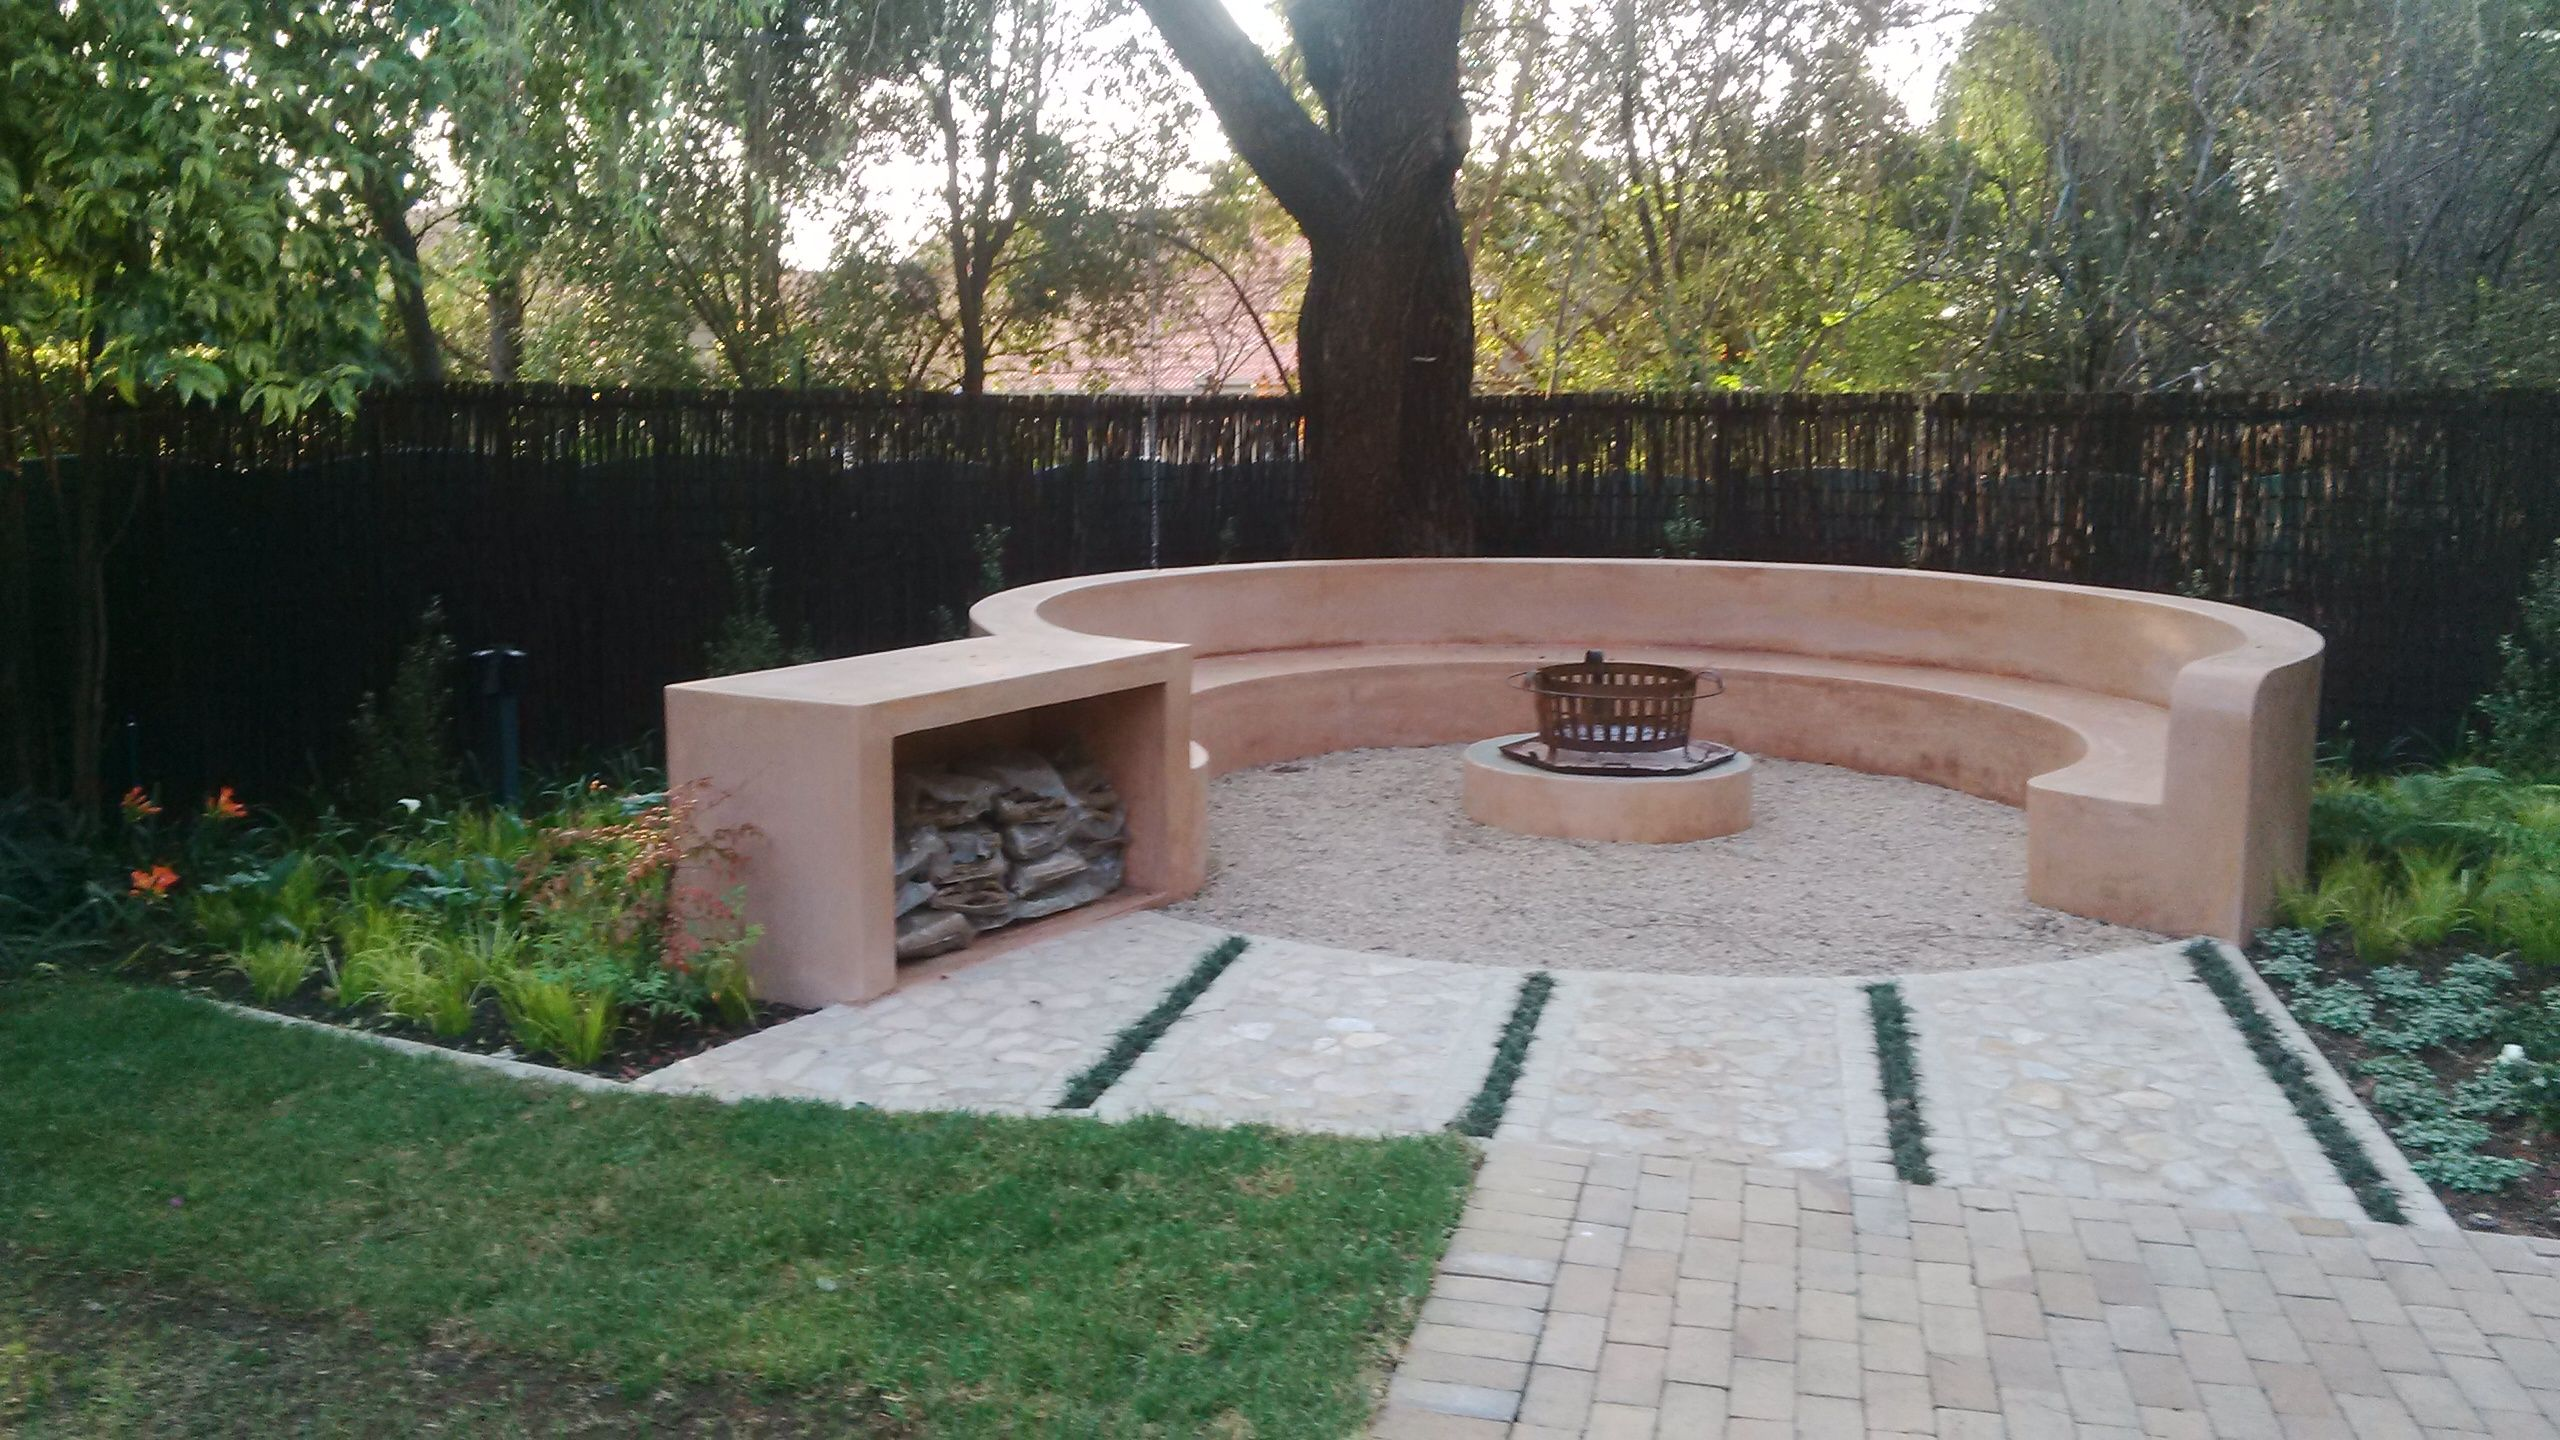 Fire Pits and Entertainment Areas | Boma's | Pinterest ... on Boma Ideas For Small Gardens id=55732